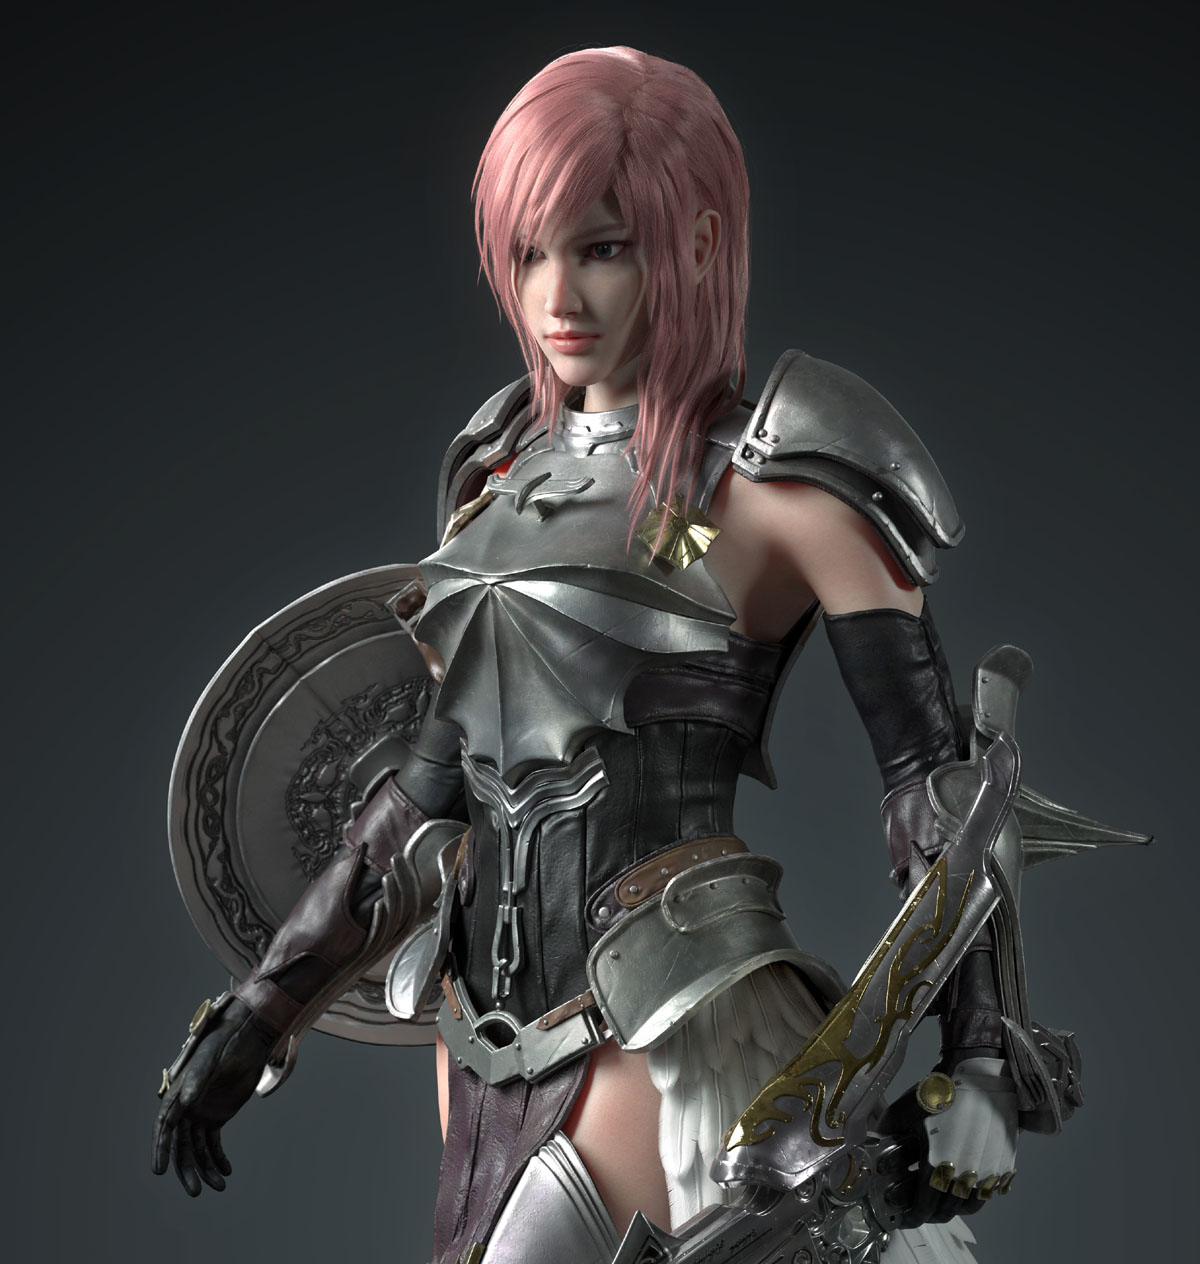 3d model game character fantasy by ycfcg